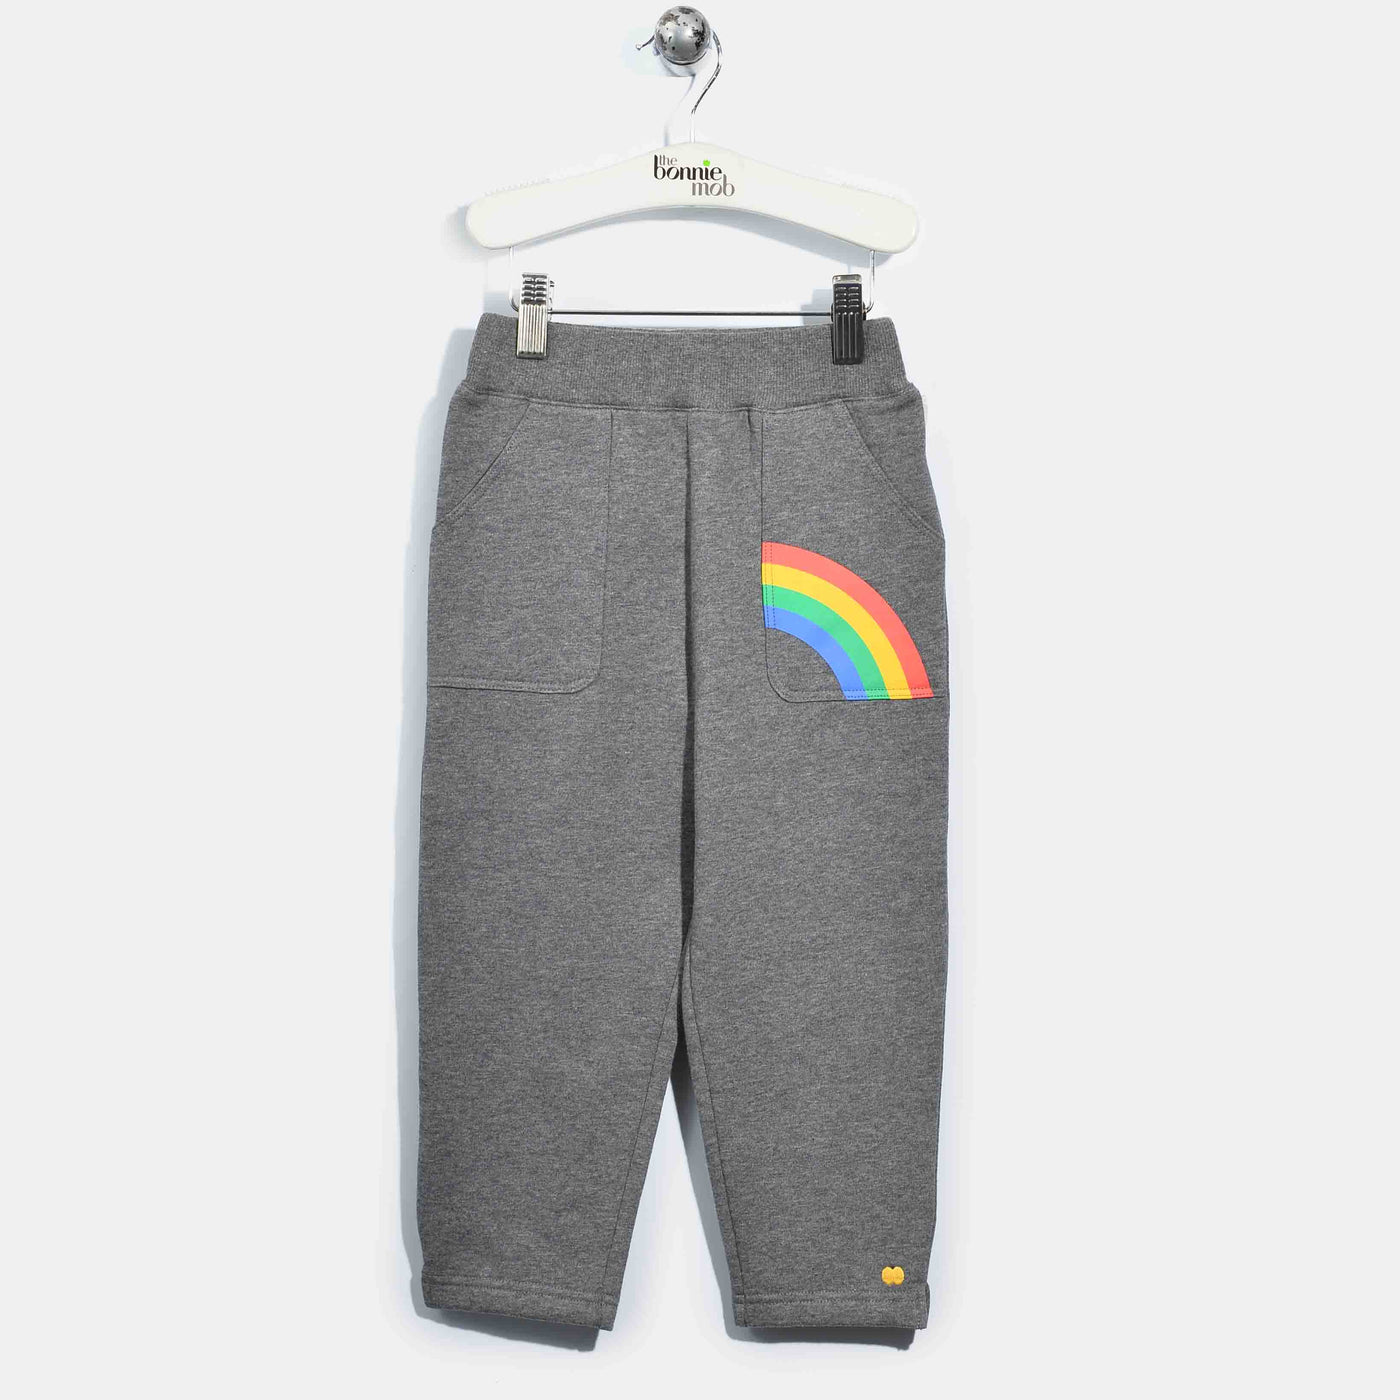 L-HENRY-Brushed Cotton Trousers-Kids-Dark Grey